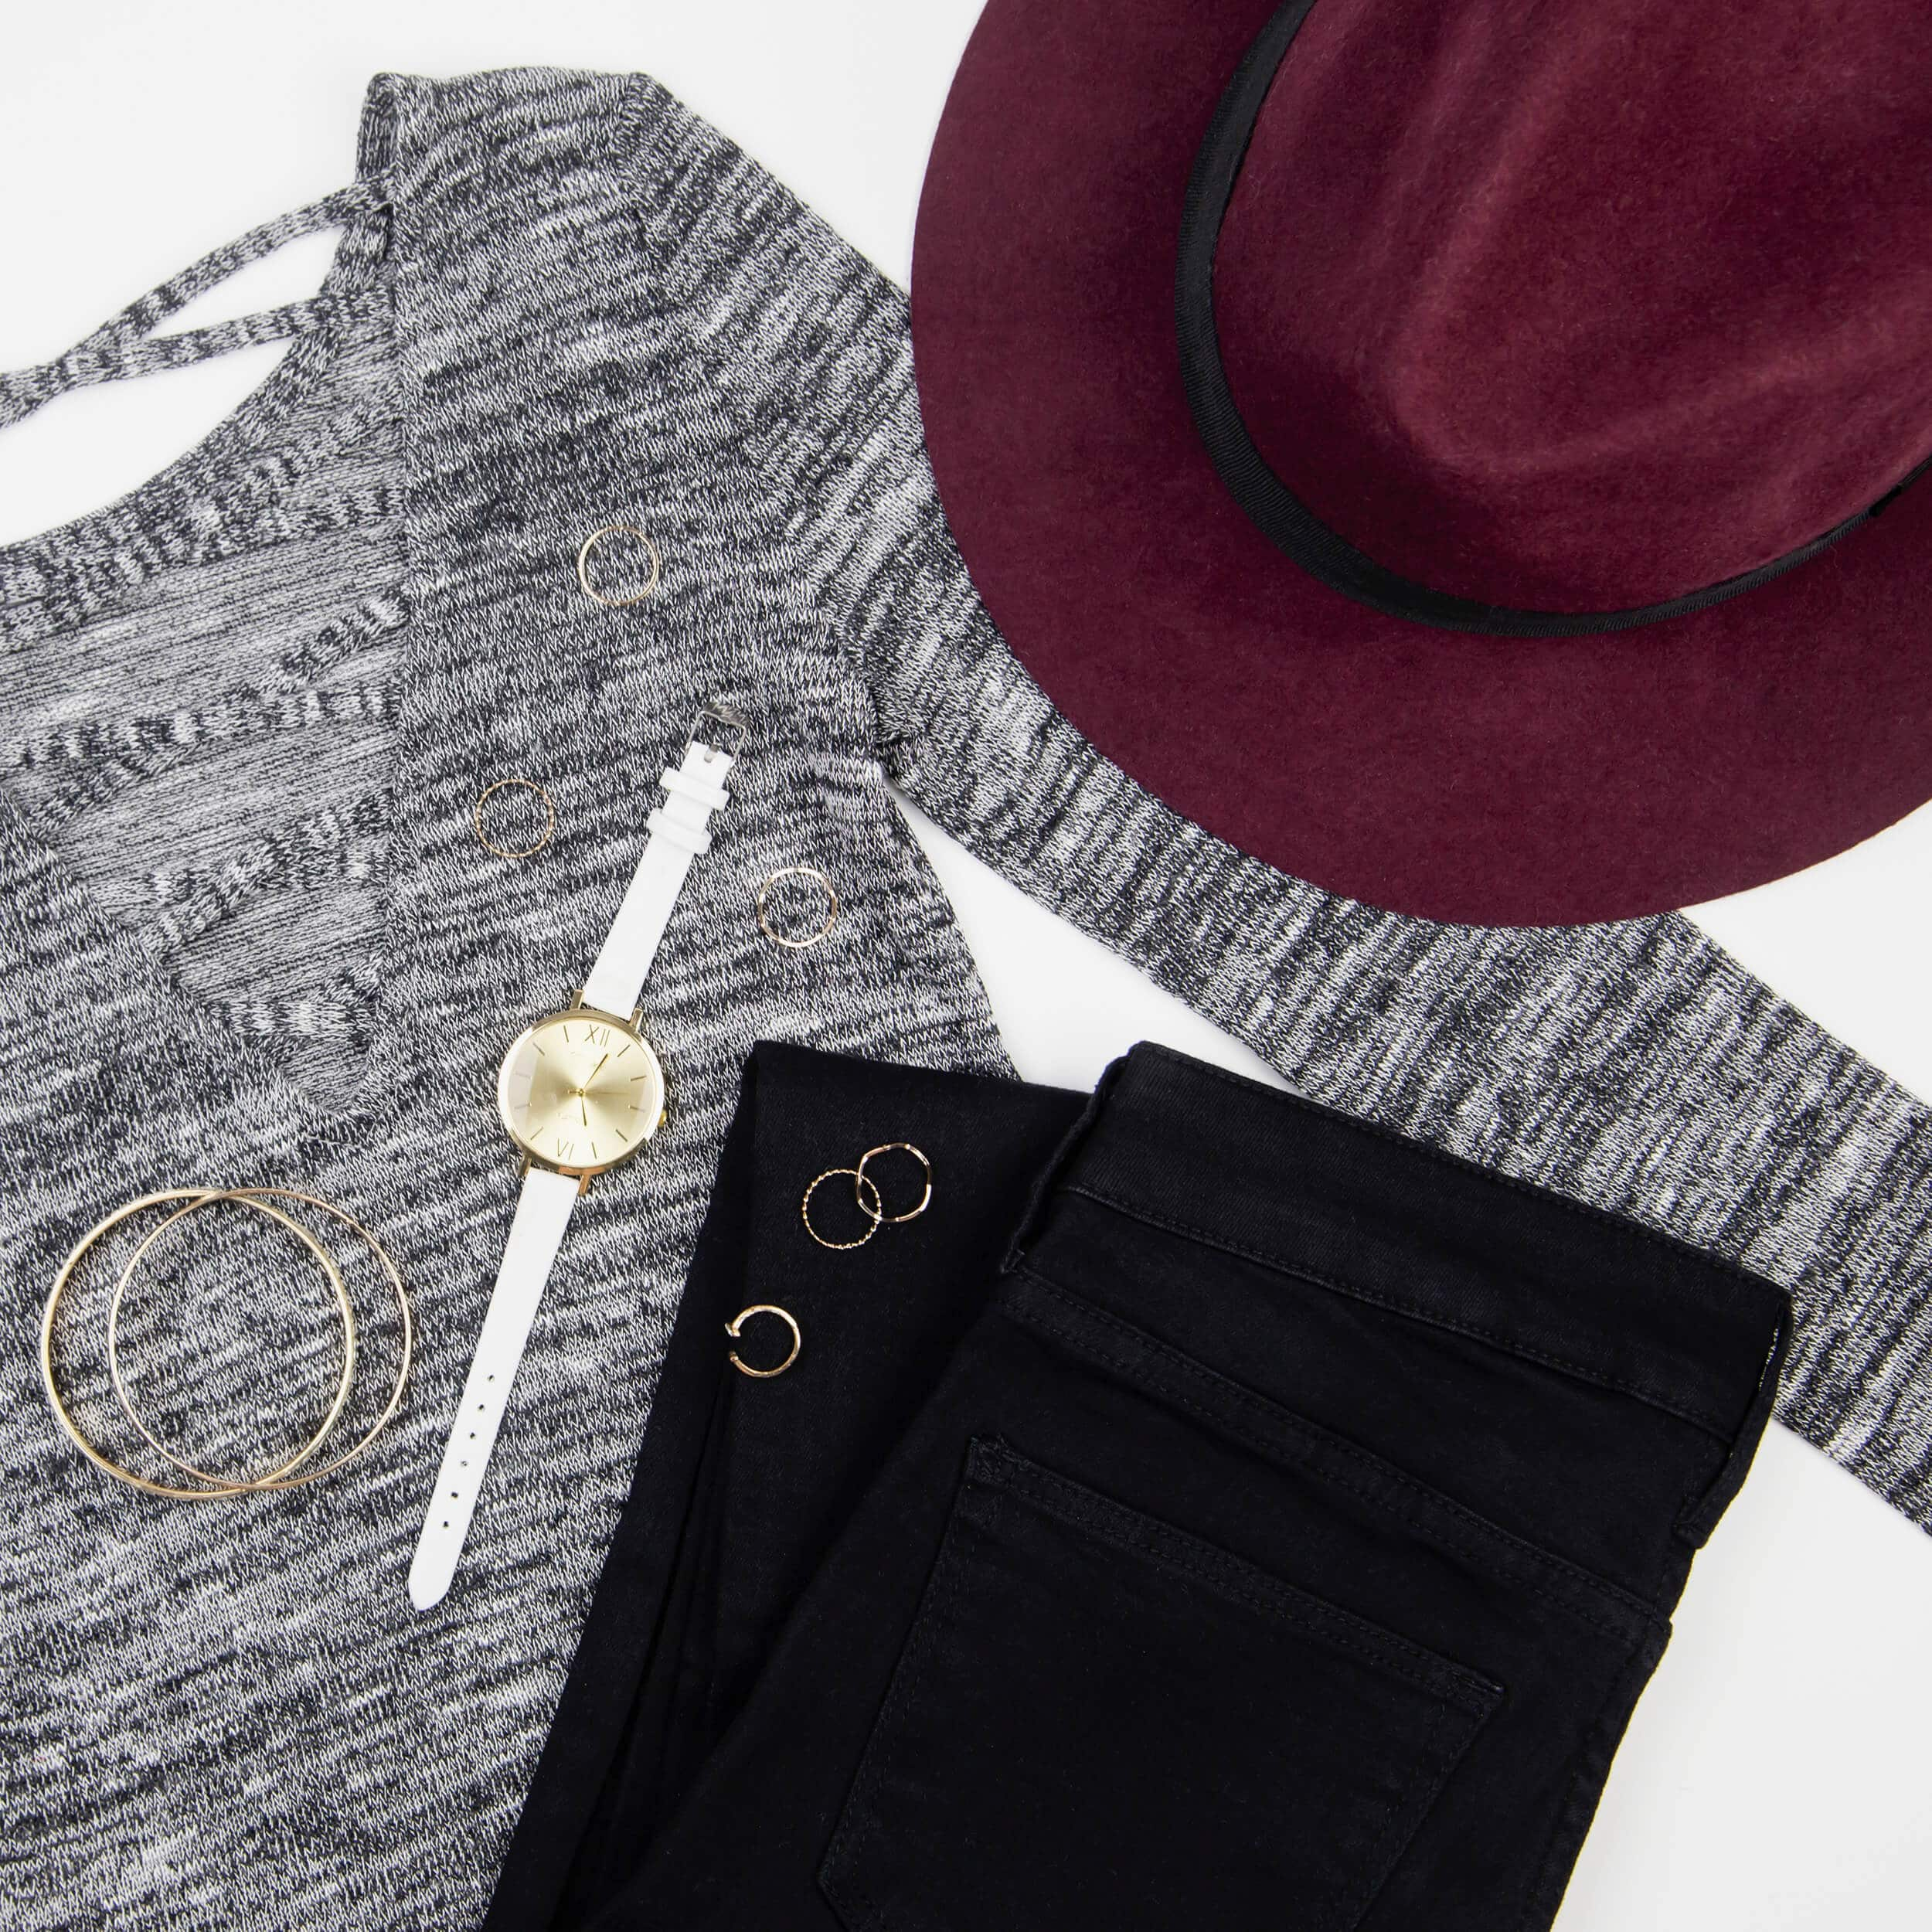 What To Wear To Work: The Top 5 Most Trendy and Affordable Stores